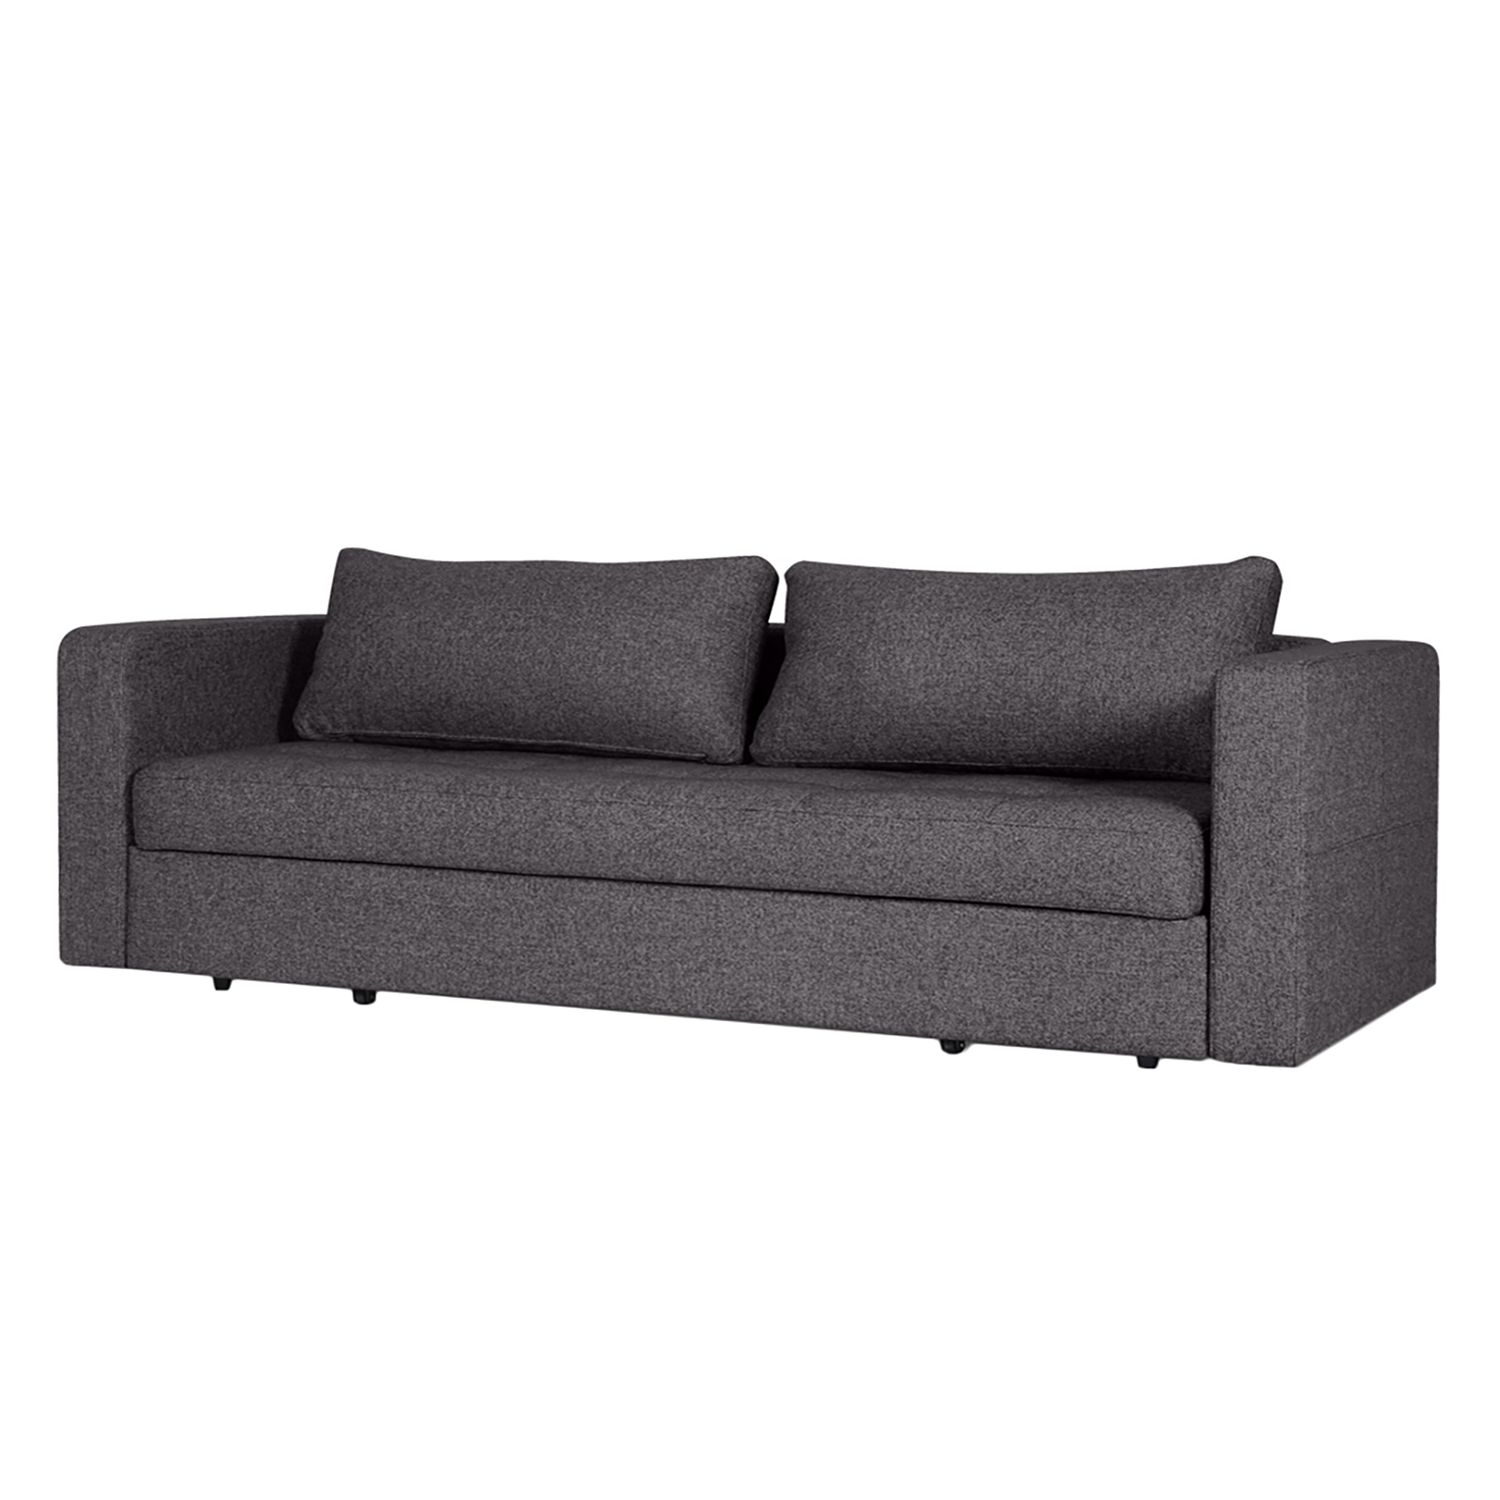 schlafsofa eperny webstoff stoff bora grau meliert online kaufen. Black Bedroom Furniture Sets. Home Design Ideas